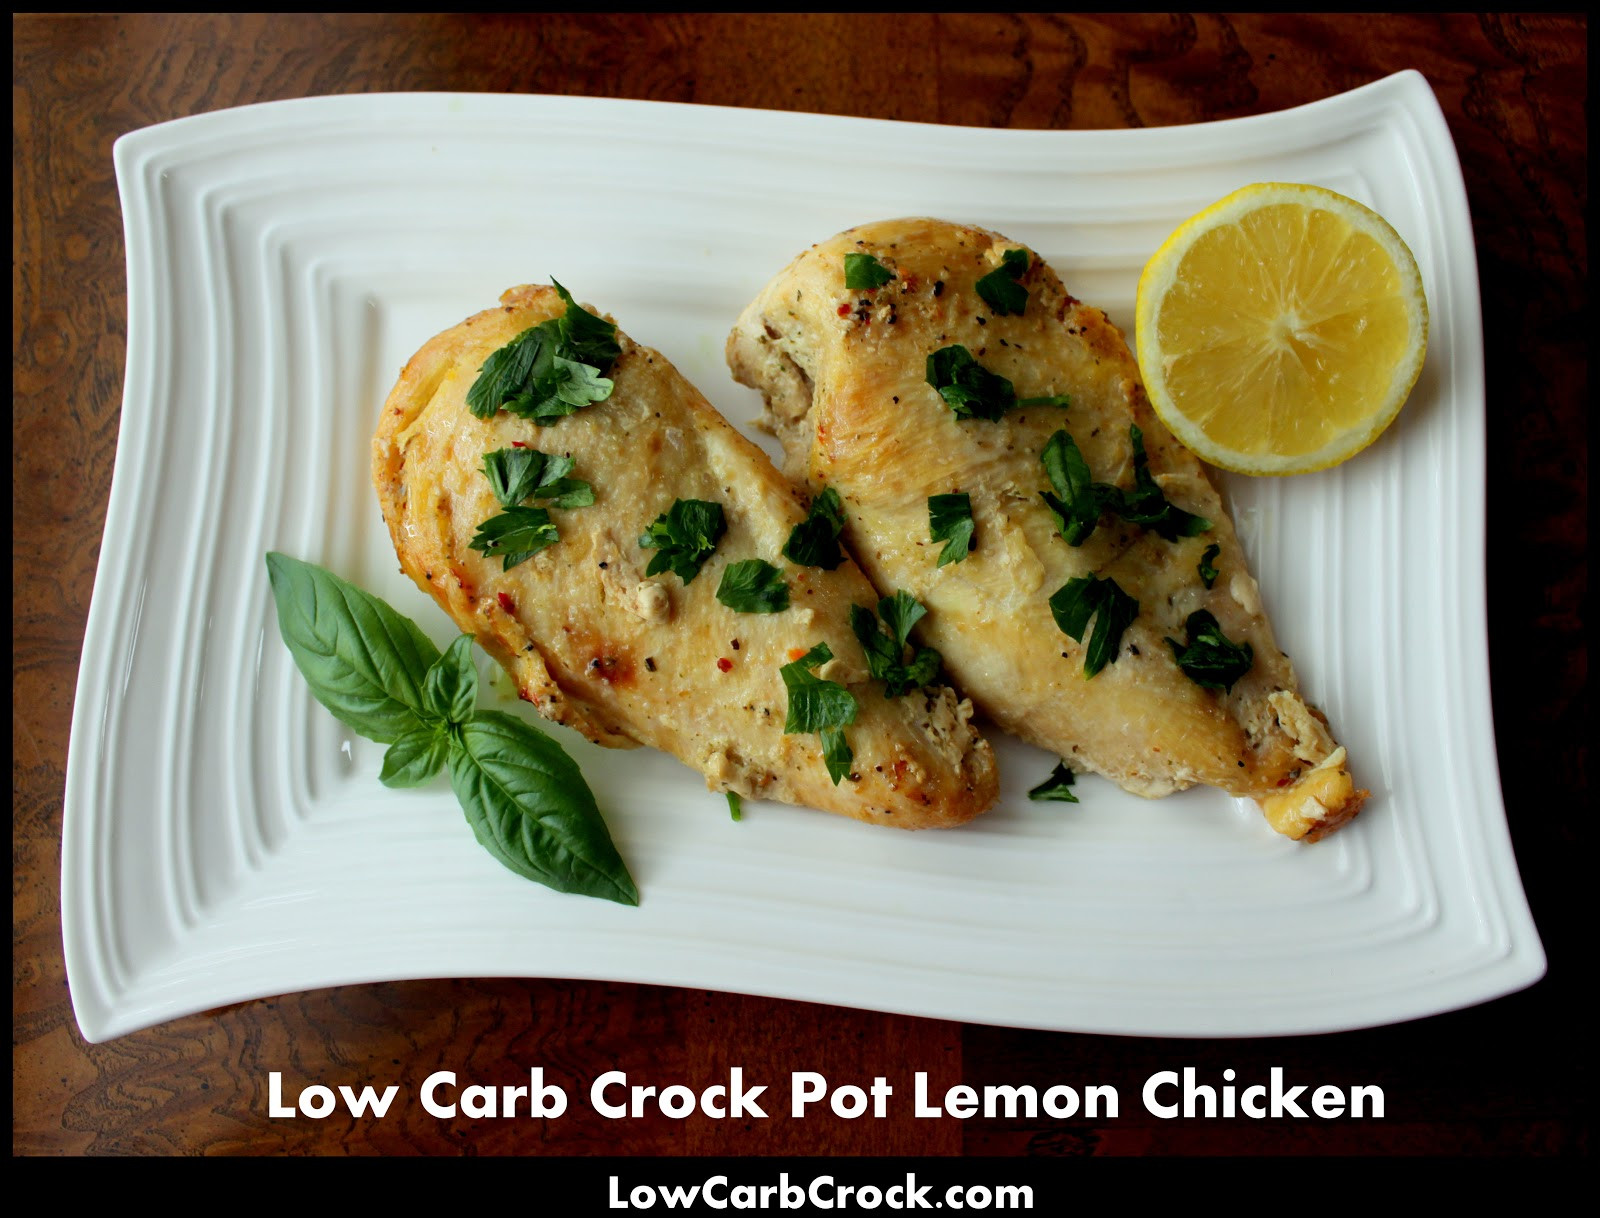 Crock Pot Chicken Breasts  Low Carb Crock Pot Lemon Chicken from frozen chicken breasts